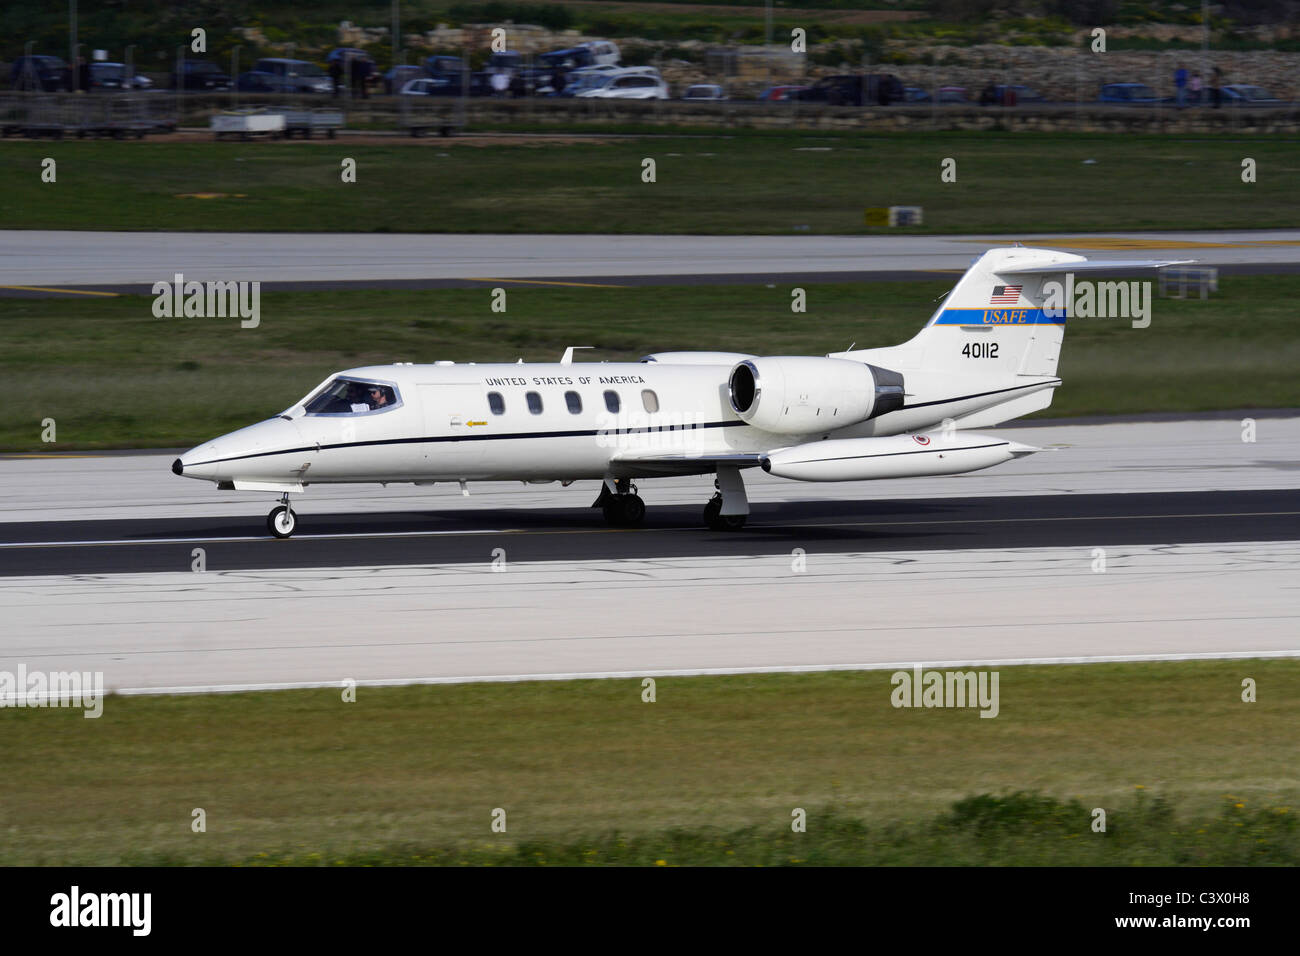 US Air Force Learjet C-21A in Malta - Stock Image